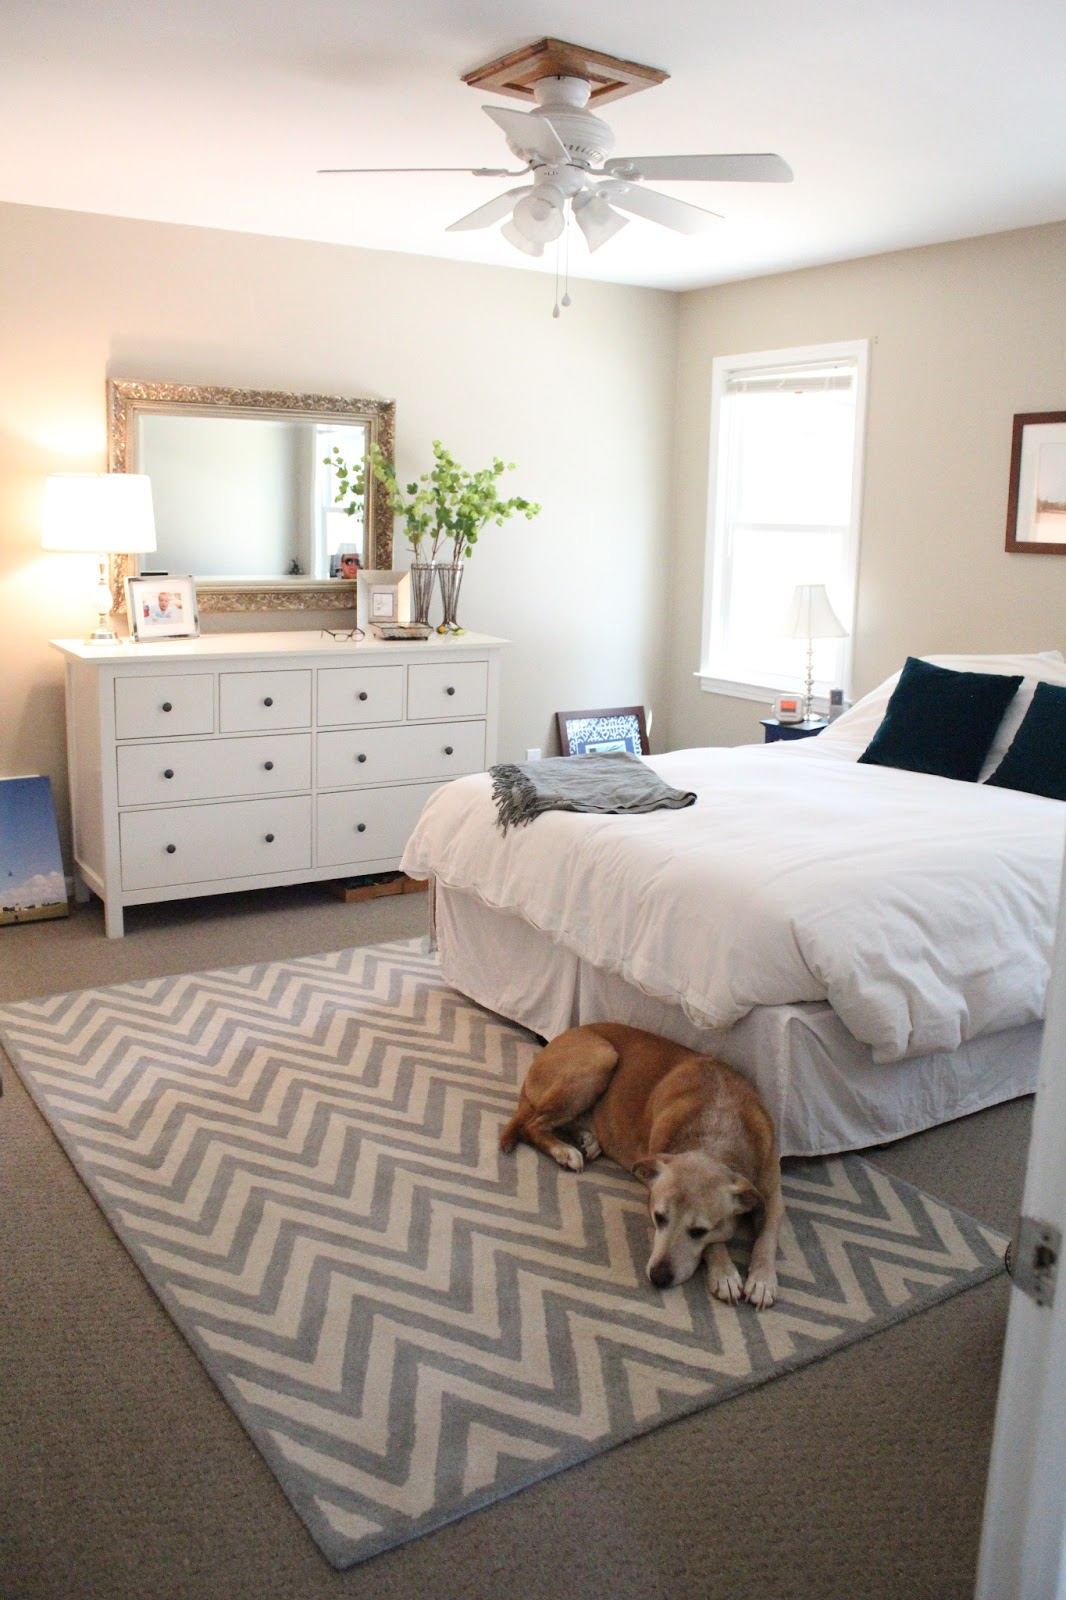 Simple Bedroom Ideas Ten June Our Rental House A Master Bedroom Tour